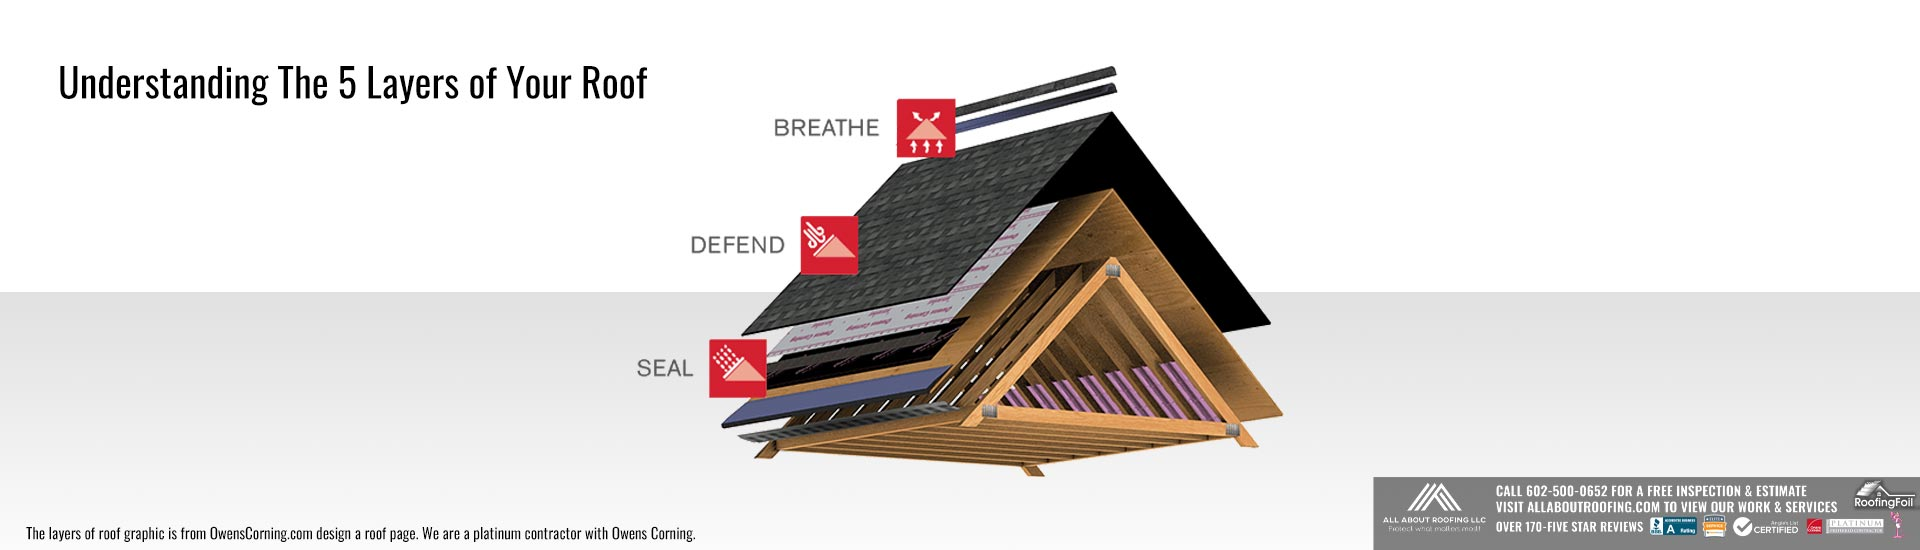 Understanding the 6 Different Layers of Your Roof